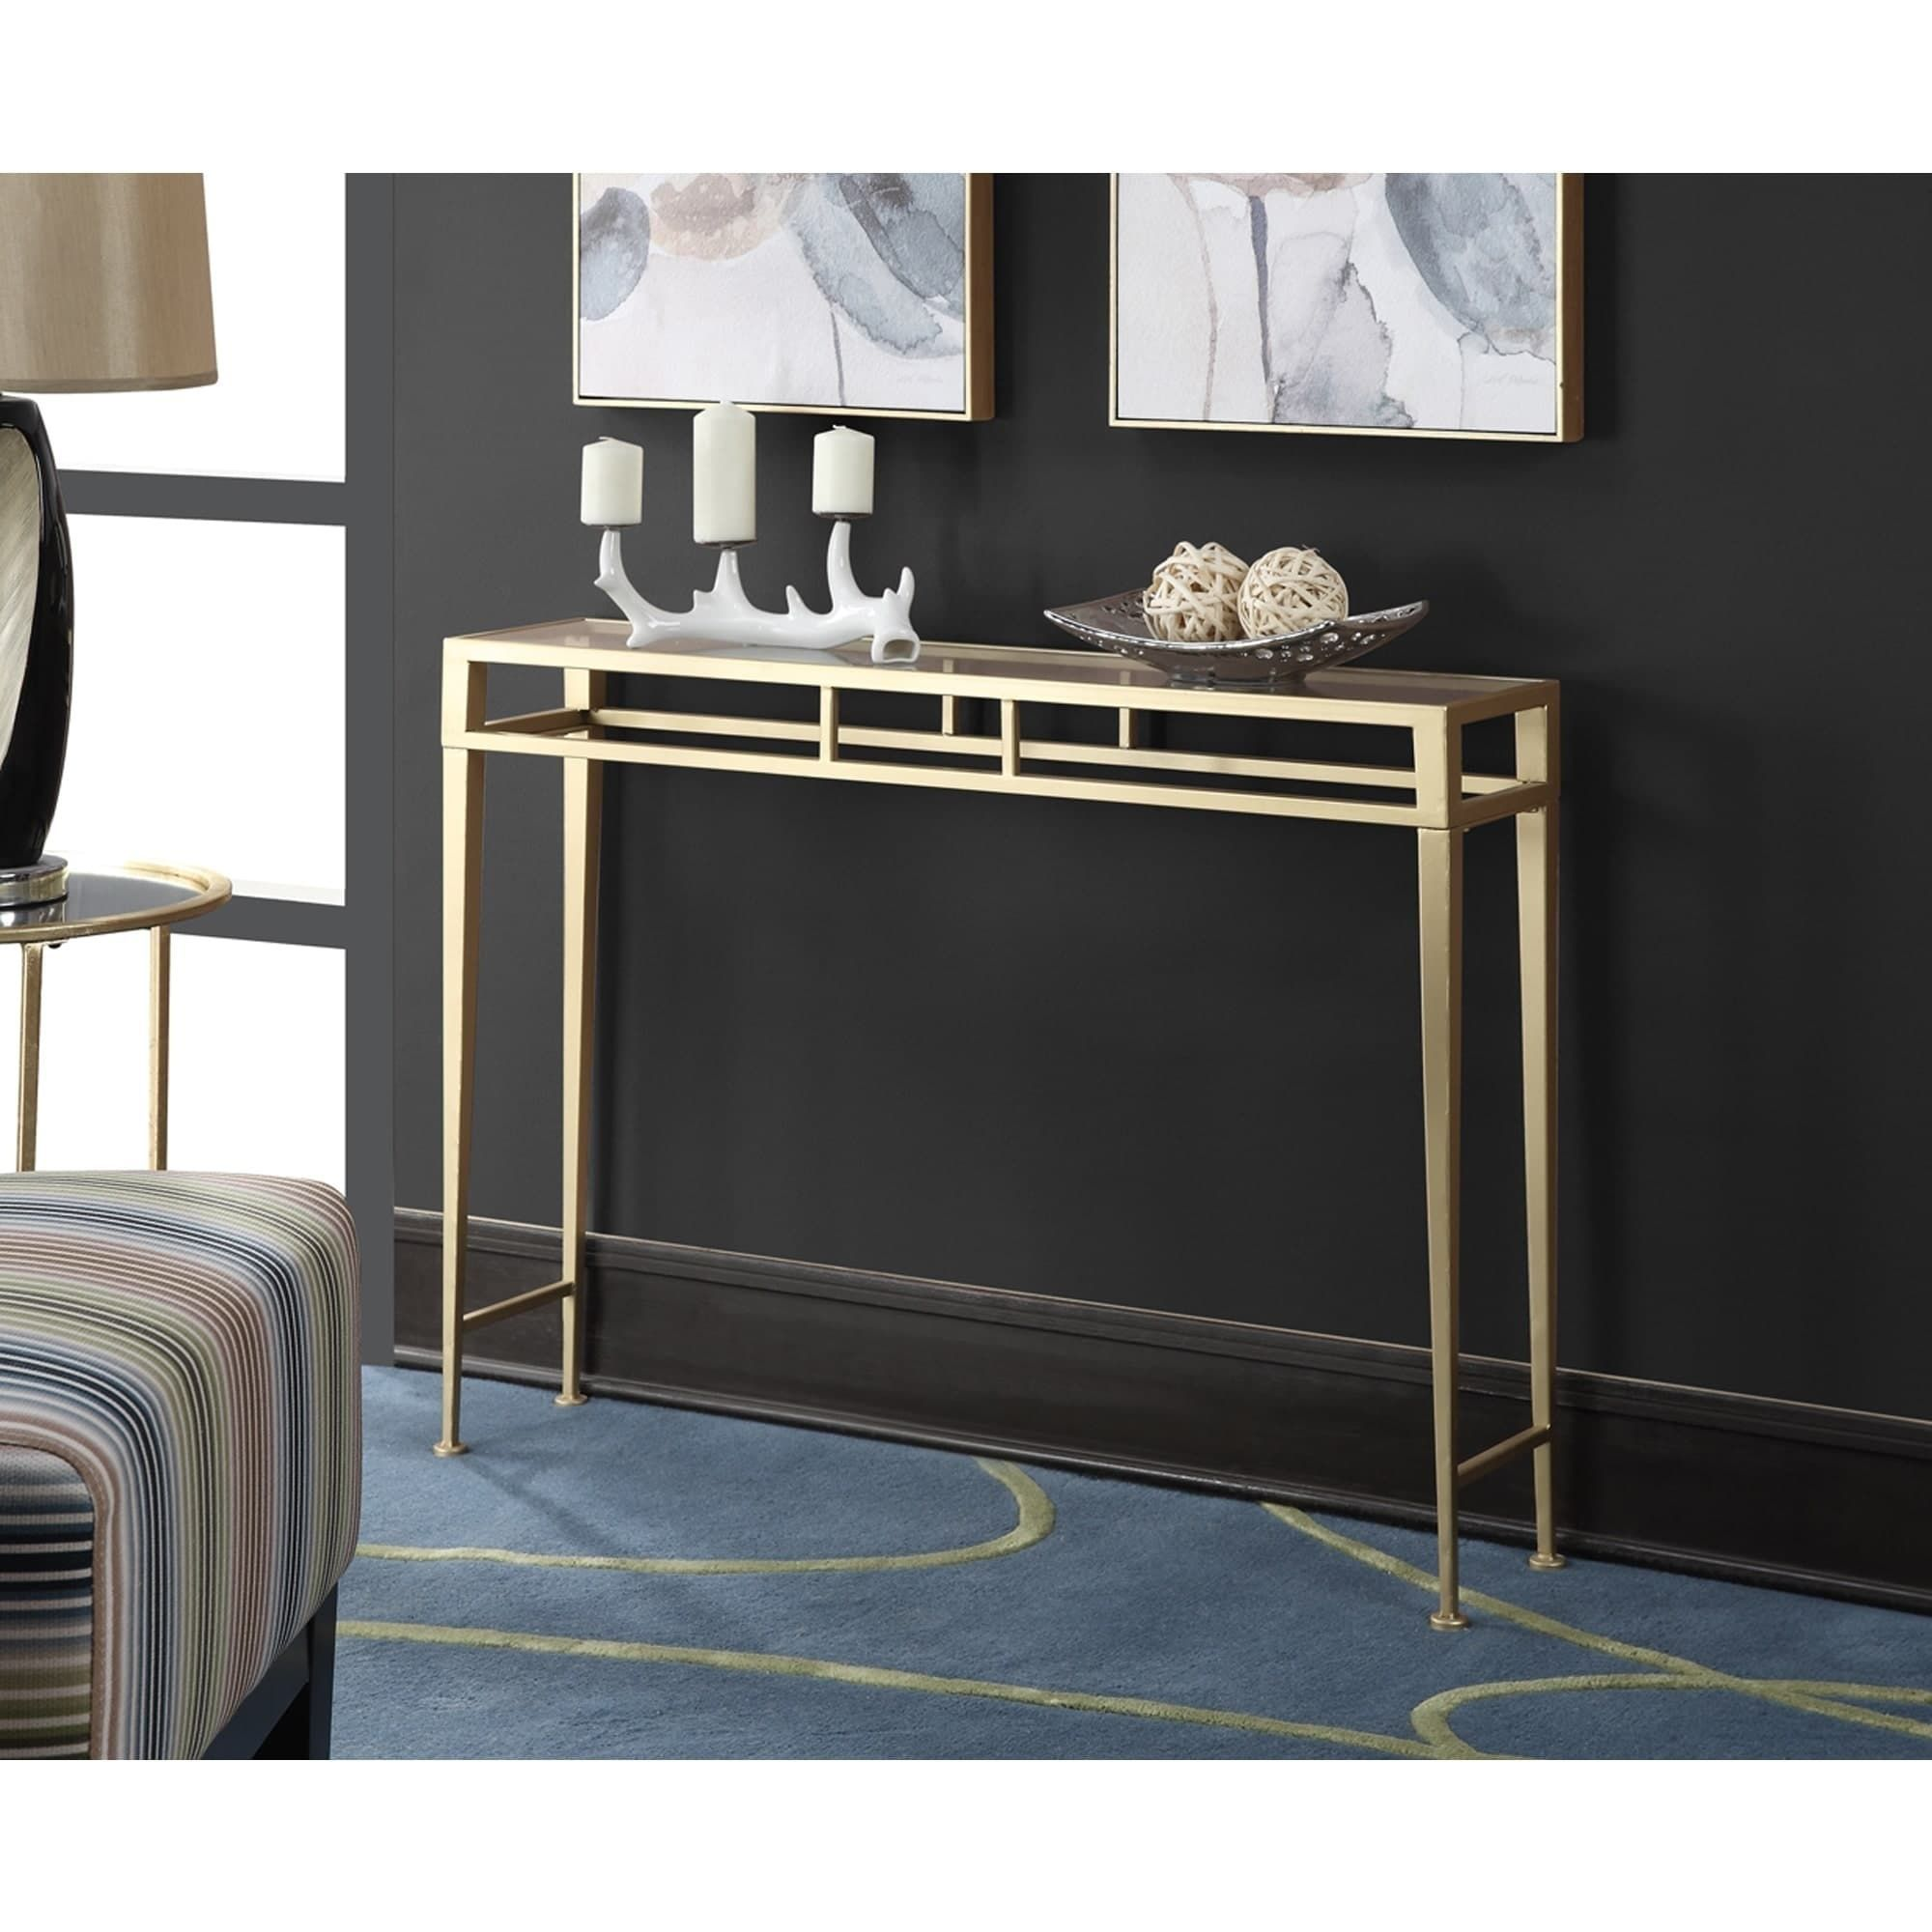 Silver Orchid Grant Hall Iron And Glass Console Table Hall Console Table Glass Console Table Console Table